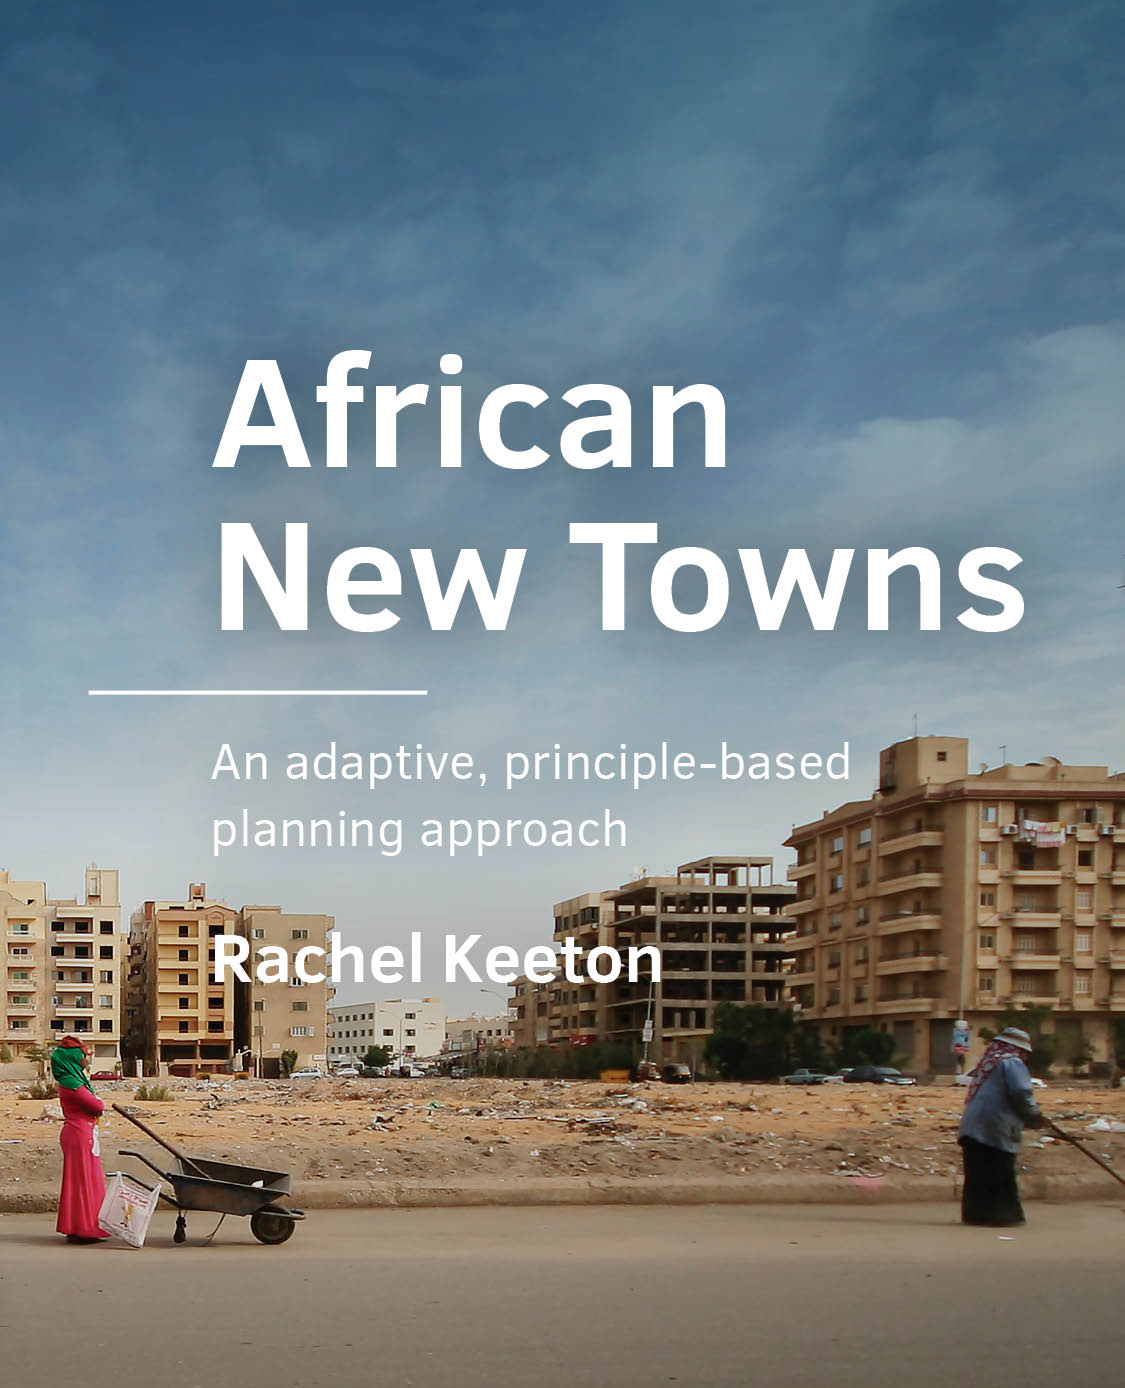 View No. 18 (2020): African New Towns